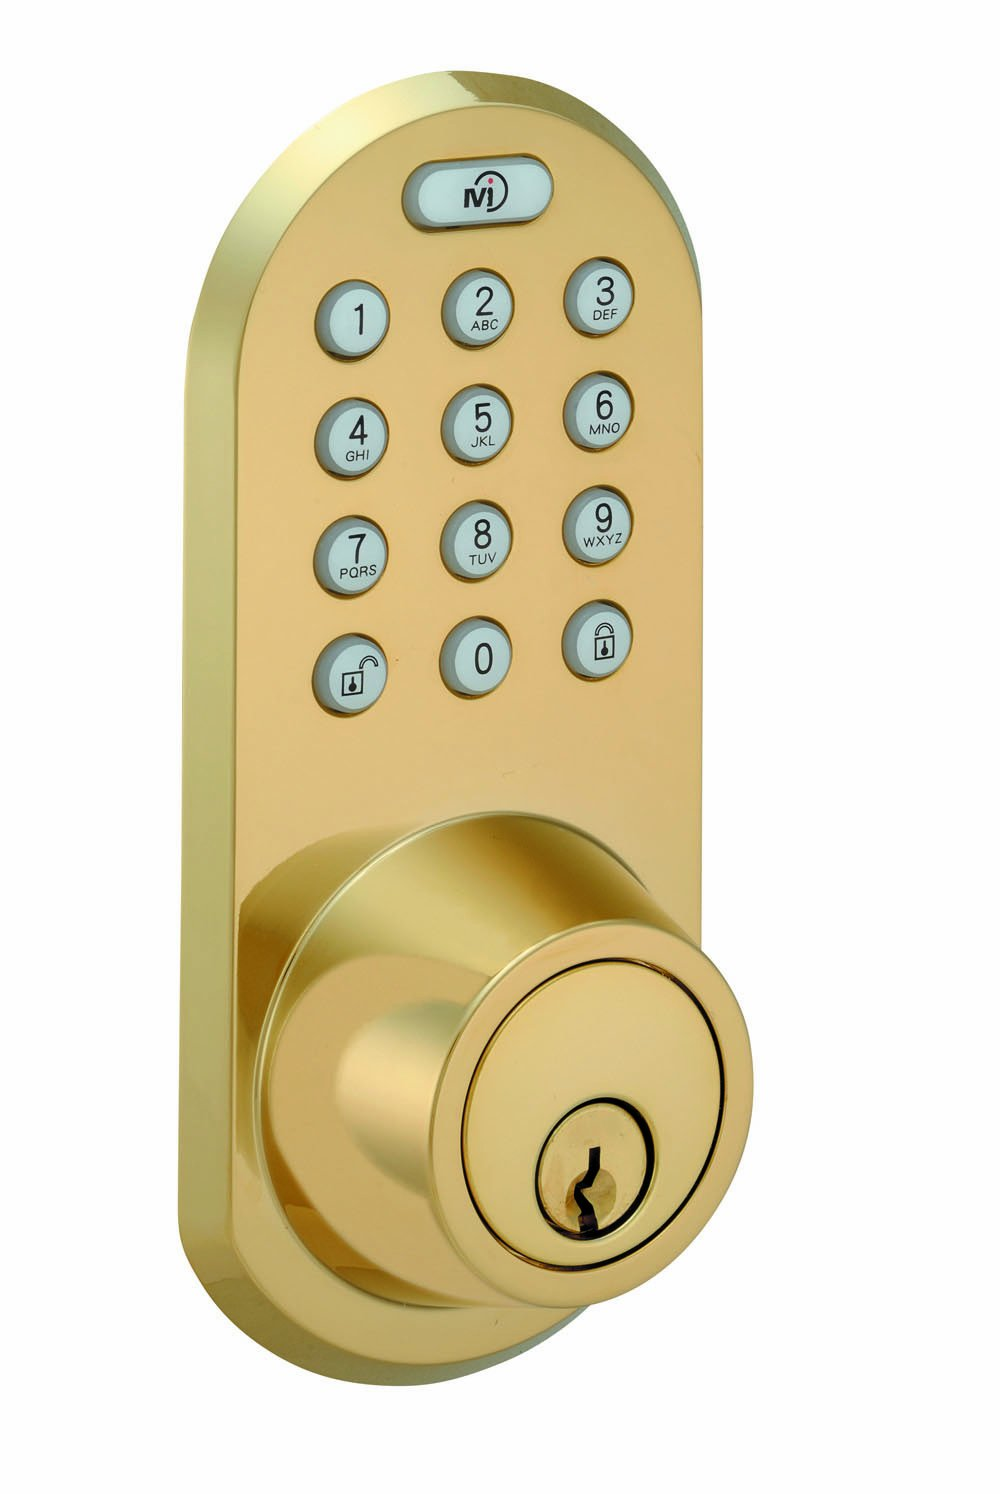 MORNING INDUSTRY INC QF-01P 3-In-1 Remote Control & Touchpad Dead Bolt, Polished Brass by Morning Industry (Image #1)